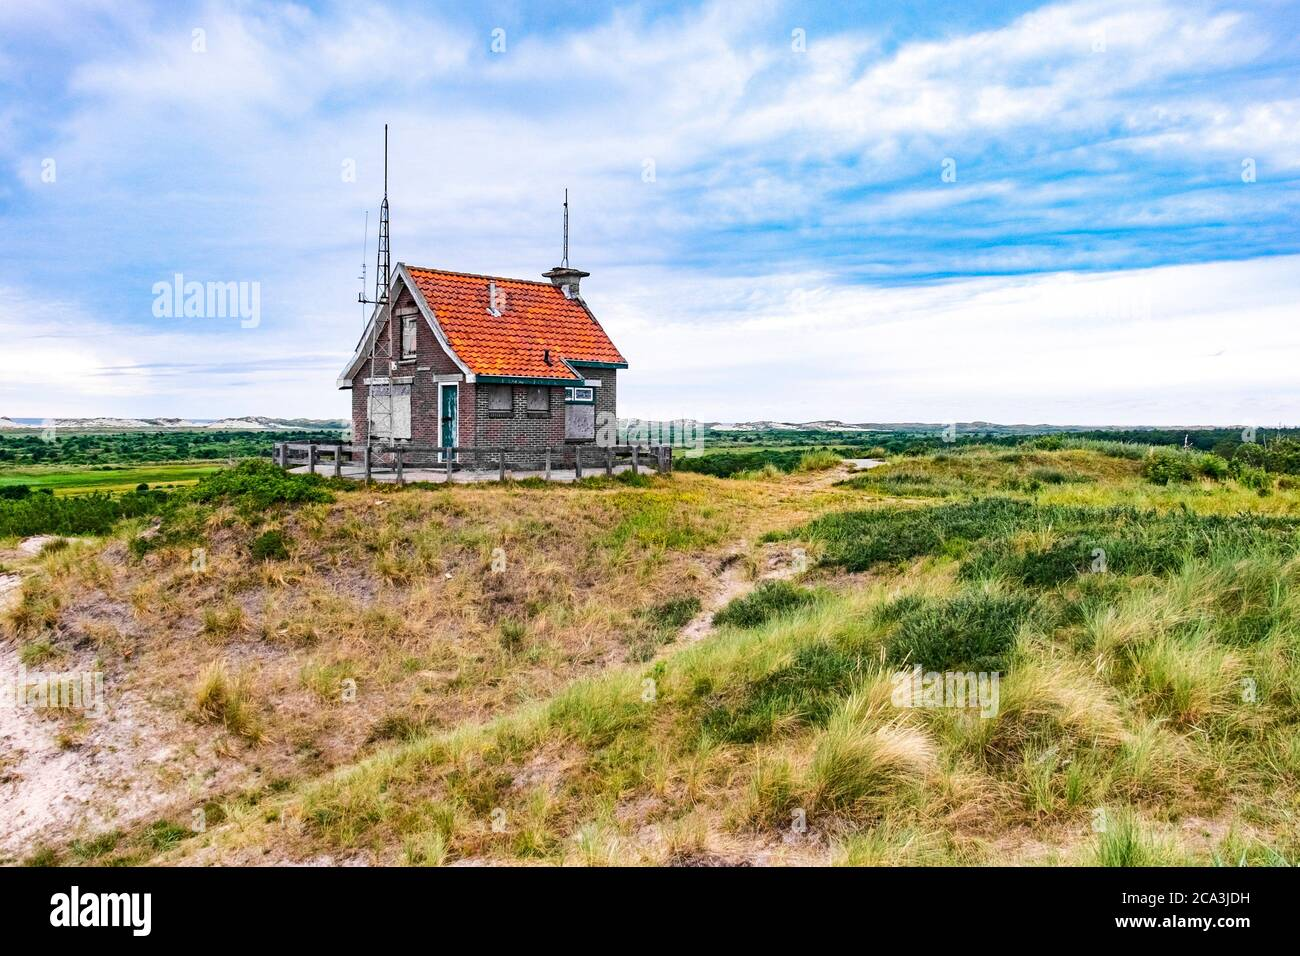 Little uninhabited house on the hills with view on the wadden sea on Frisian Island Terschelling, The Netherlands, Europe. Stock Photo